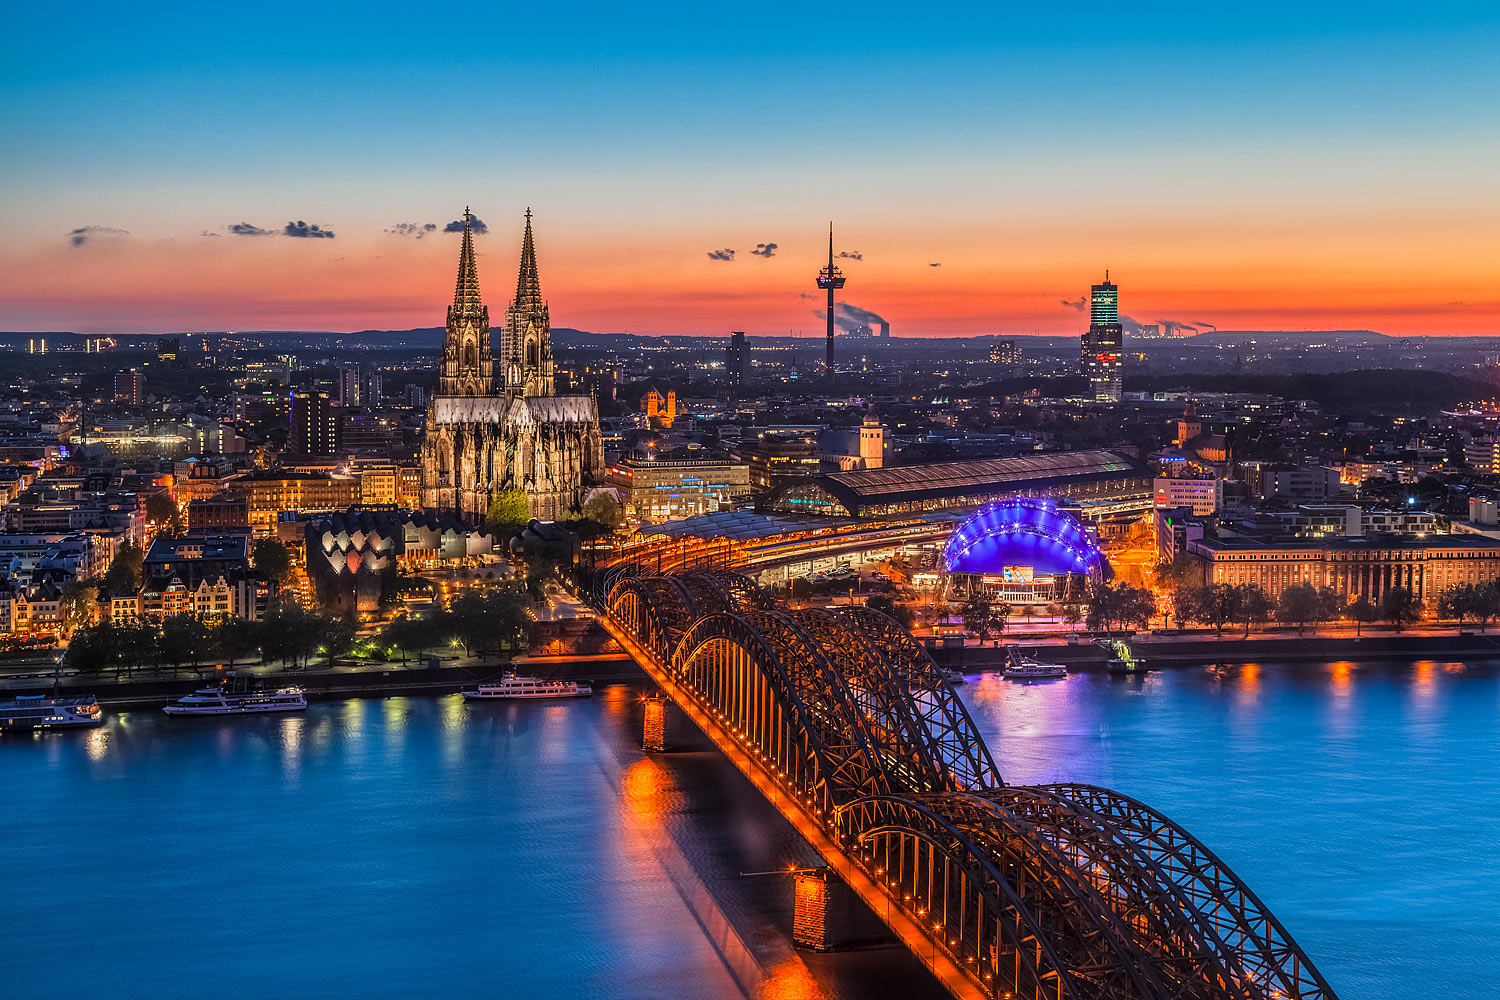 Cologne (Köln), Germany - Panorama of the City at Sunset